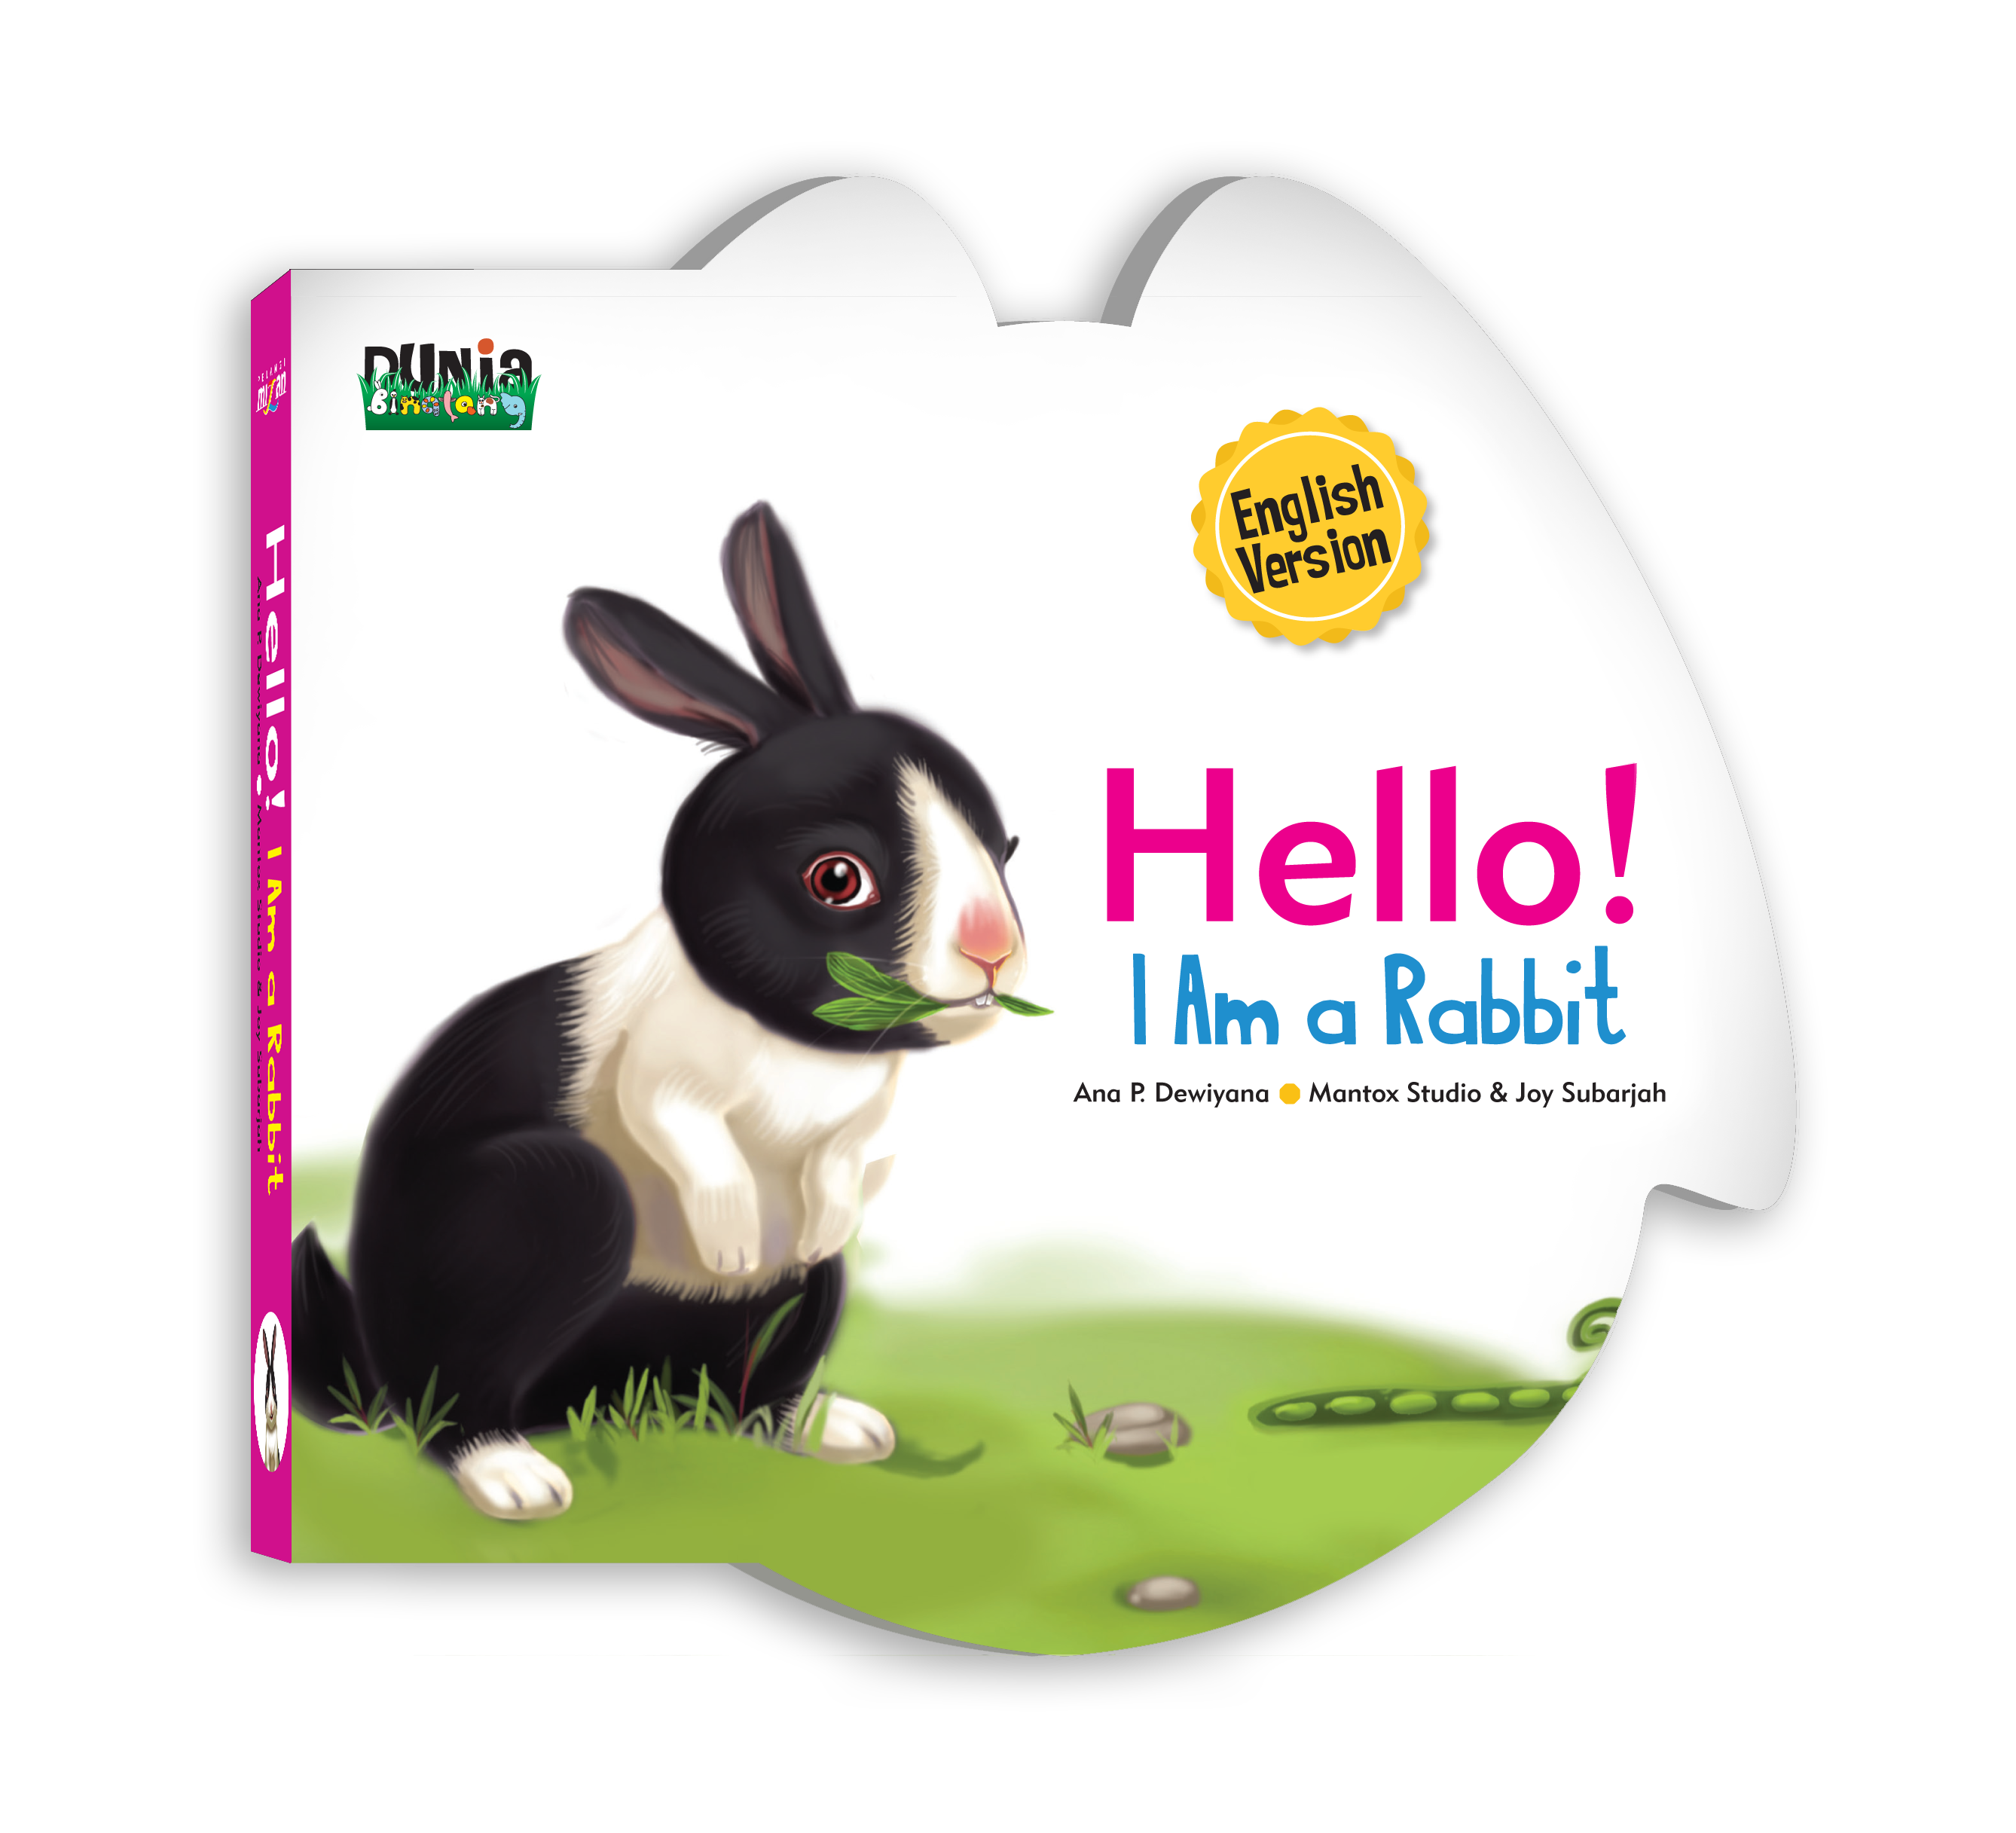 Hello! I Am a Rabbit